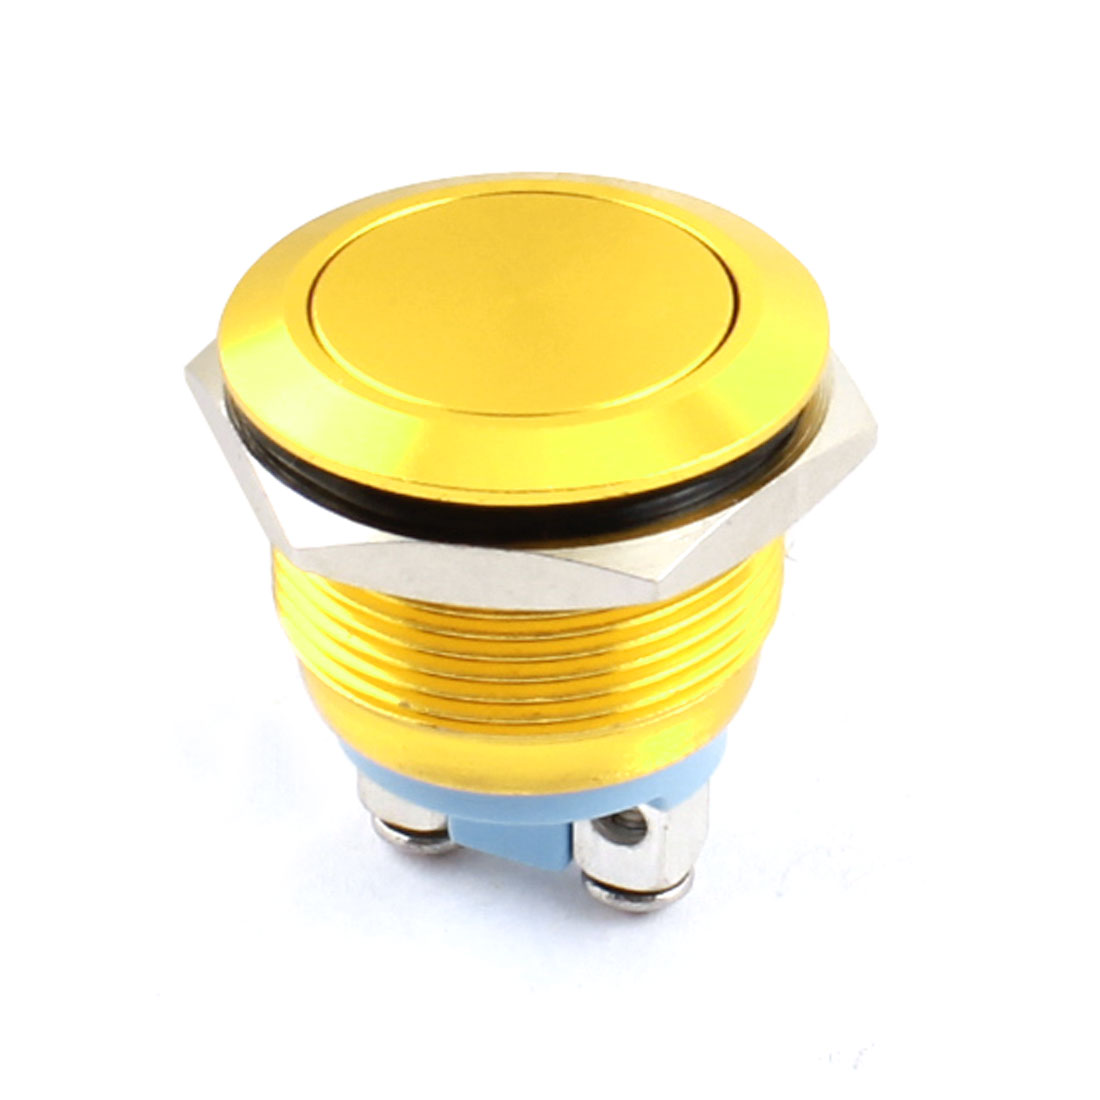 AC 250V 5A 19mm Thread Panel Mount SPST 2 Terminals Normal Open Momentary Yellow Metal Pushbutton Switch